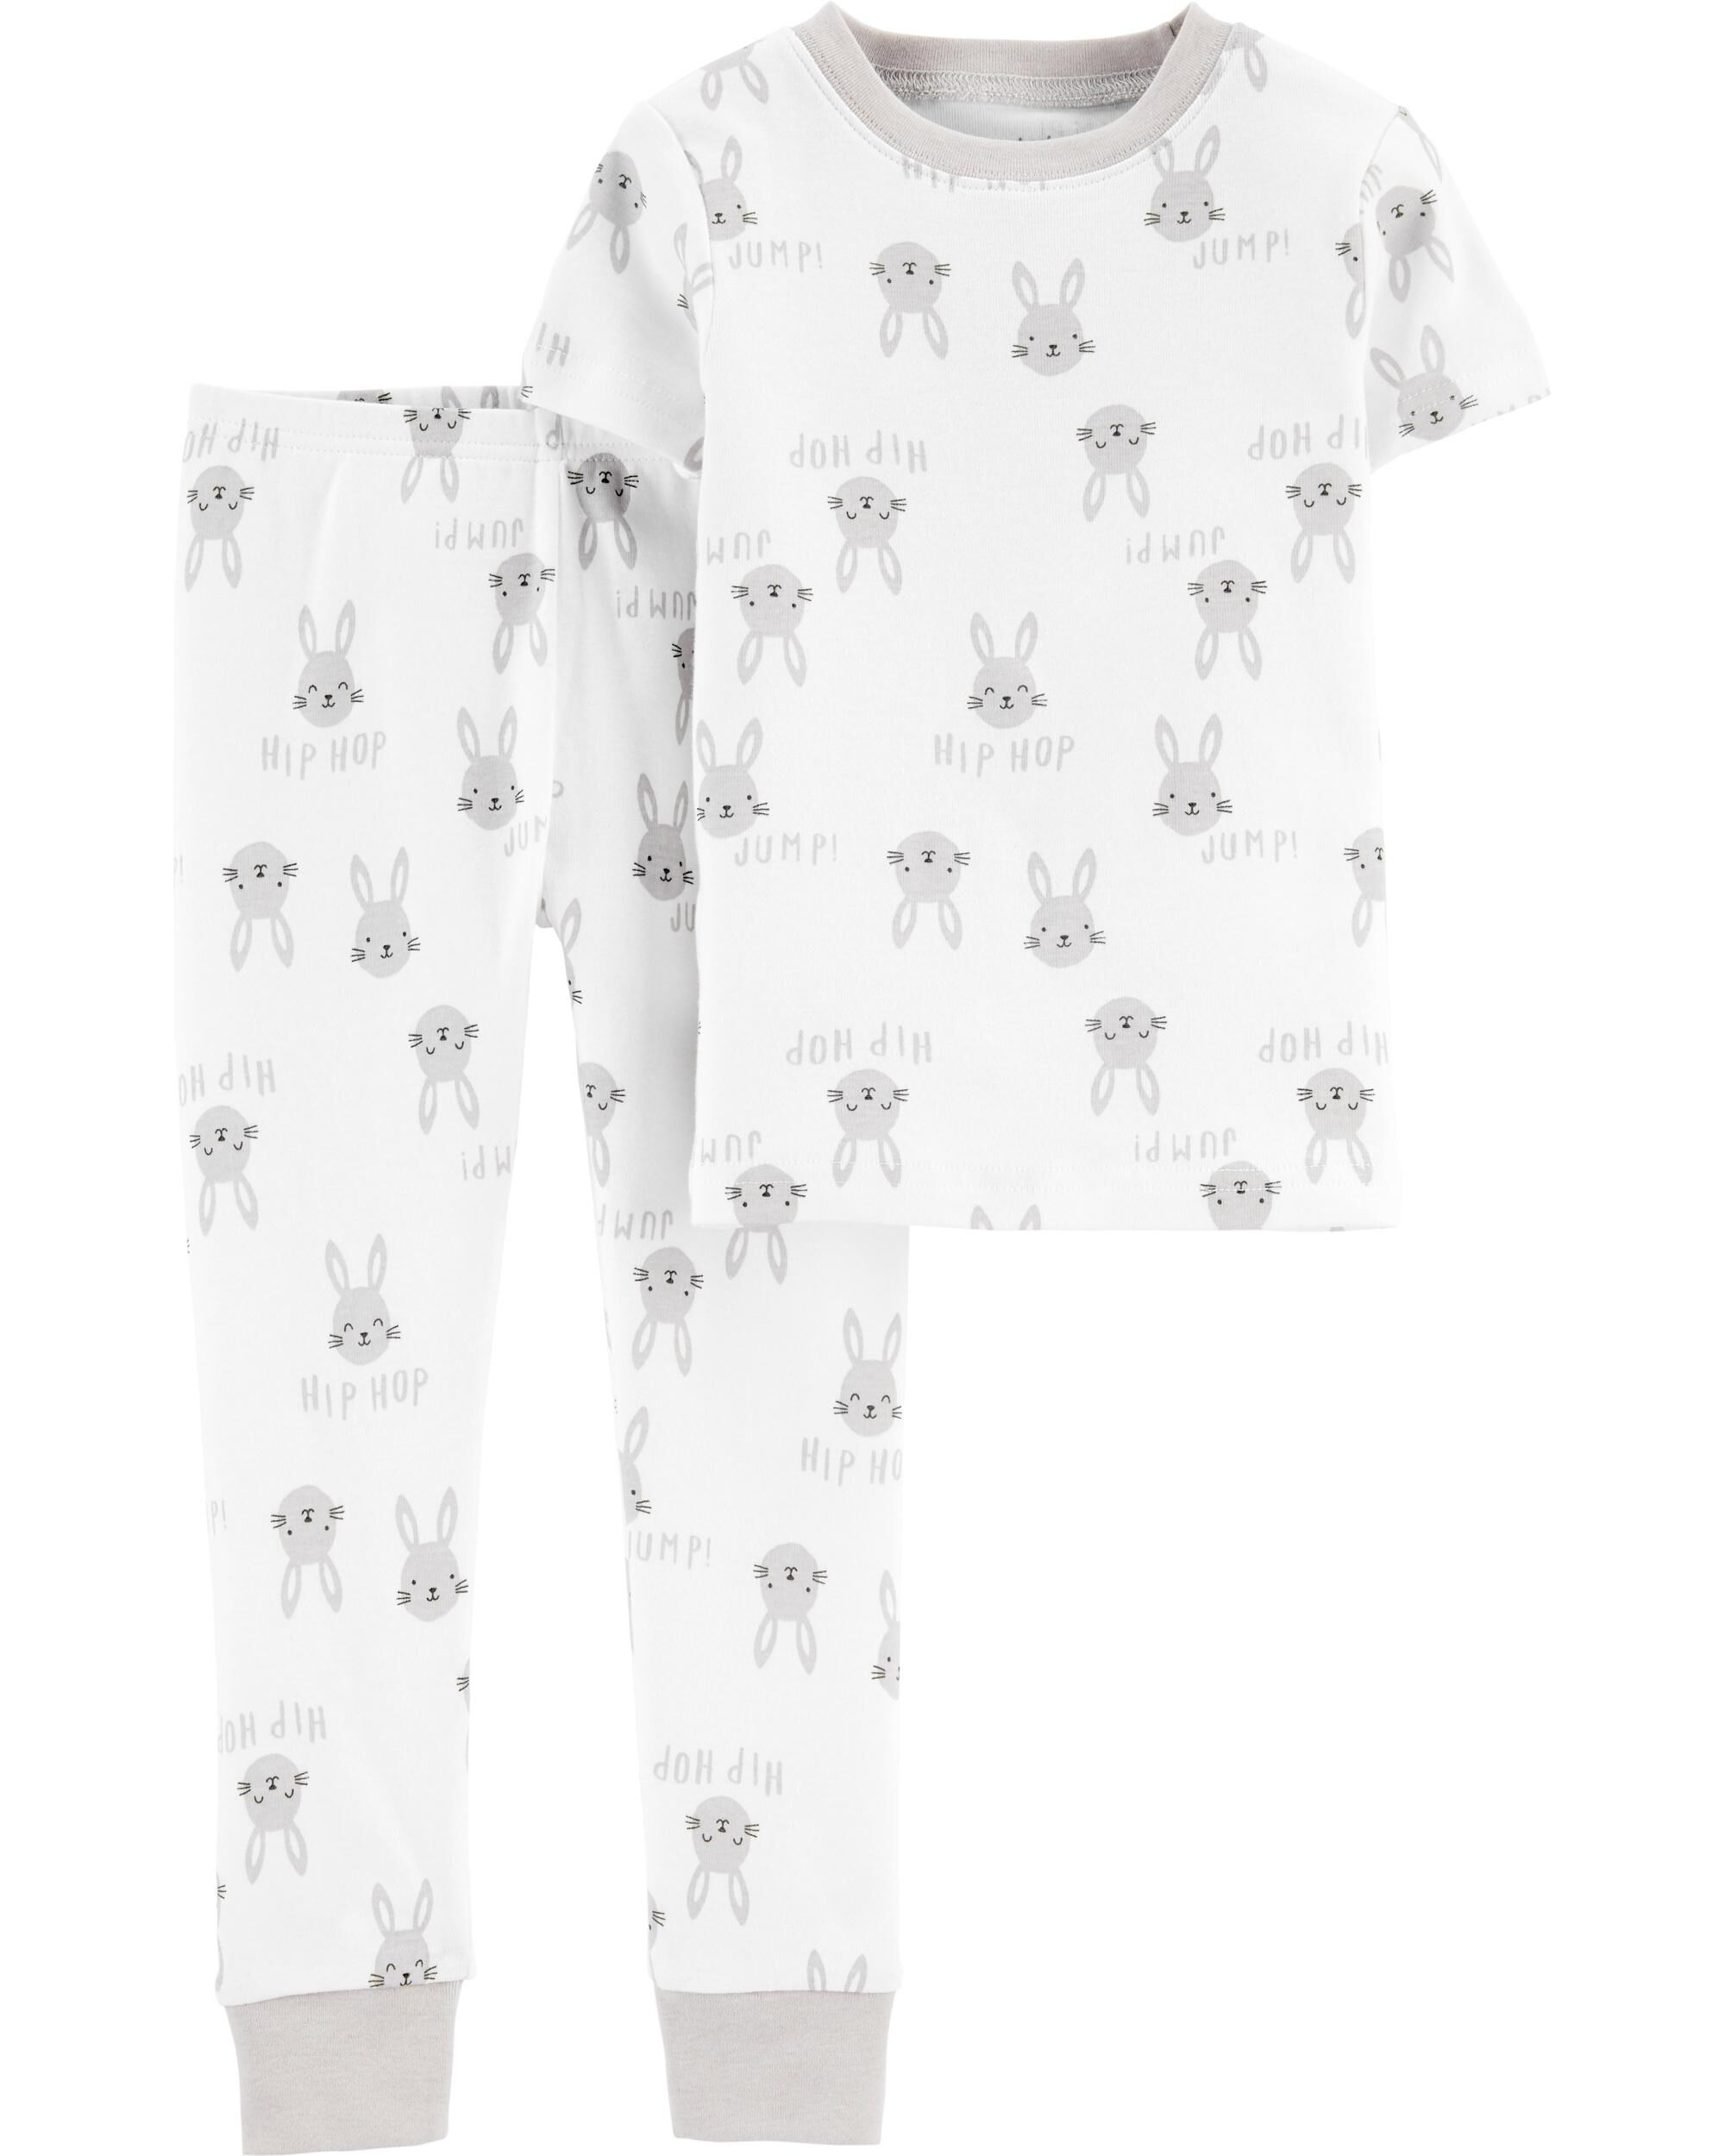 NWT Carter/'s Boys 3-Piece Cool Dog Pajama Set 18 Mos 24 Mos 4T 2T